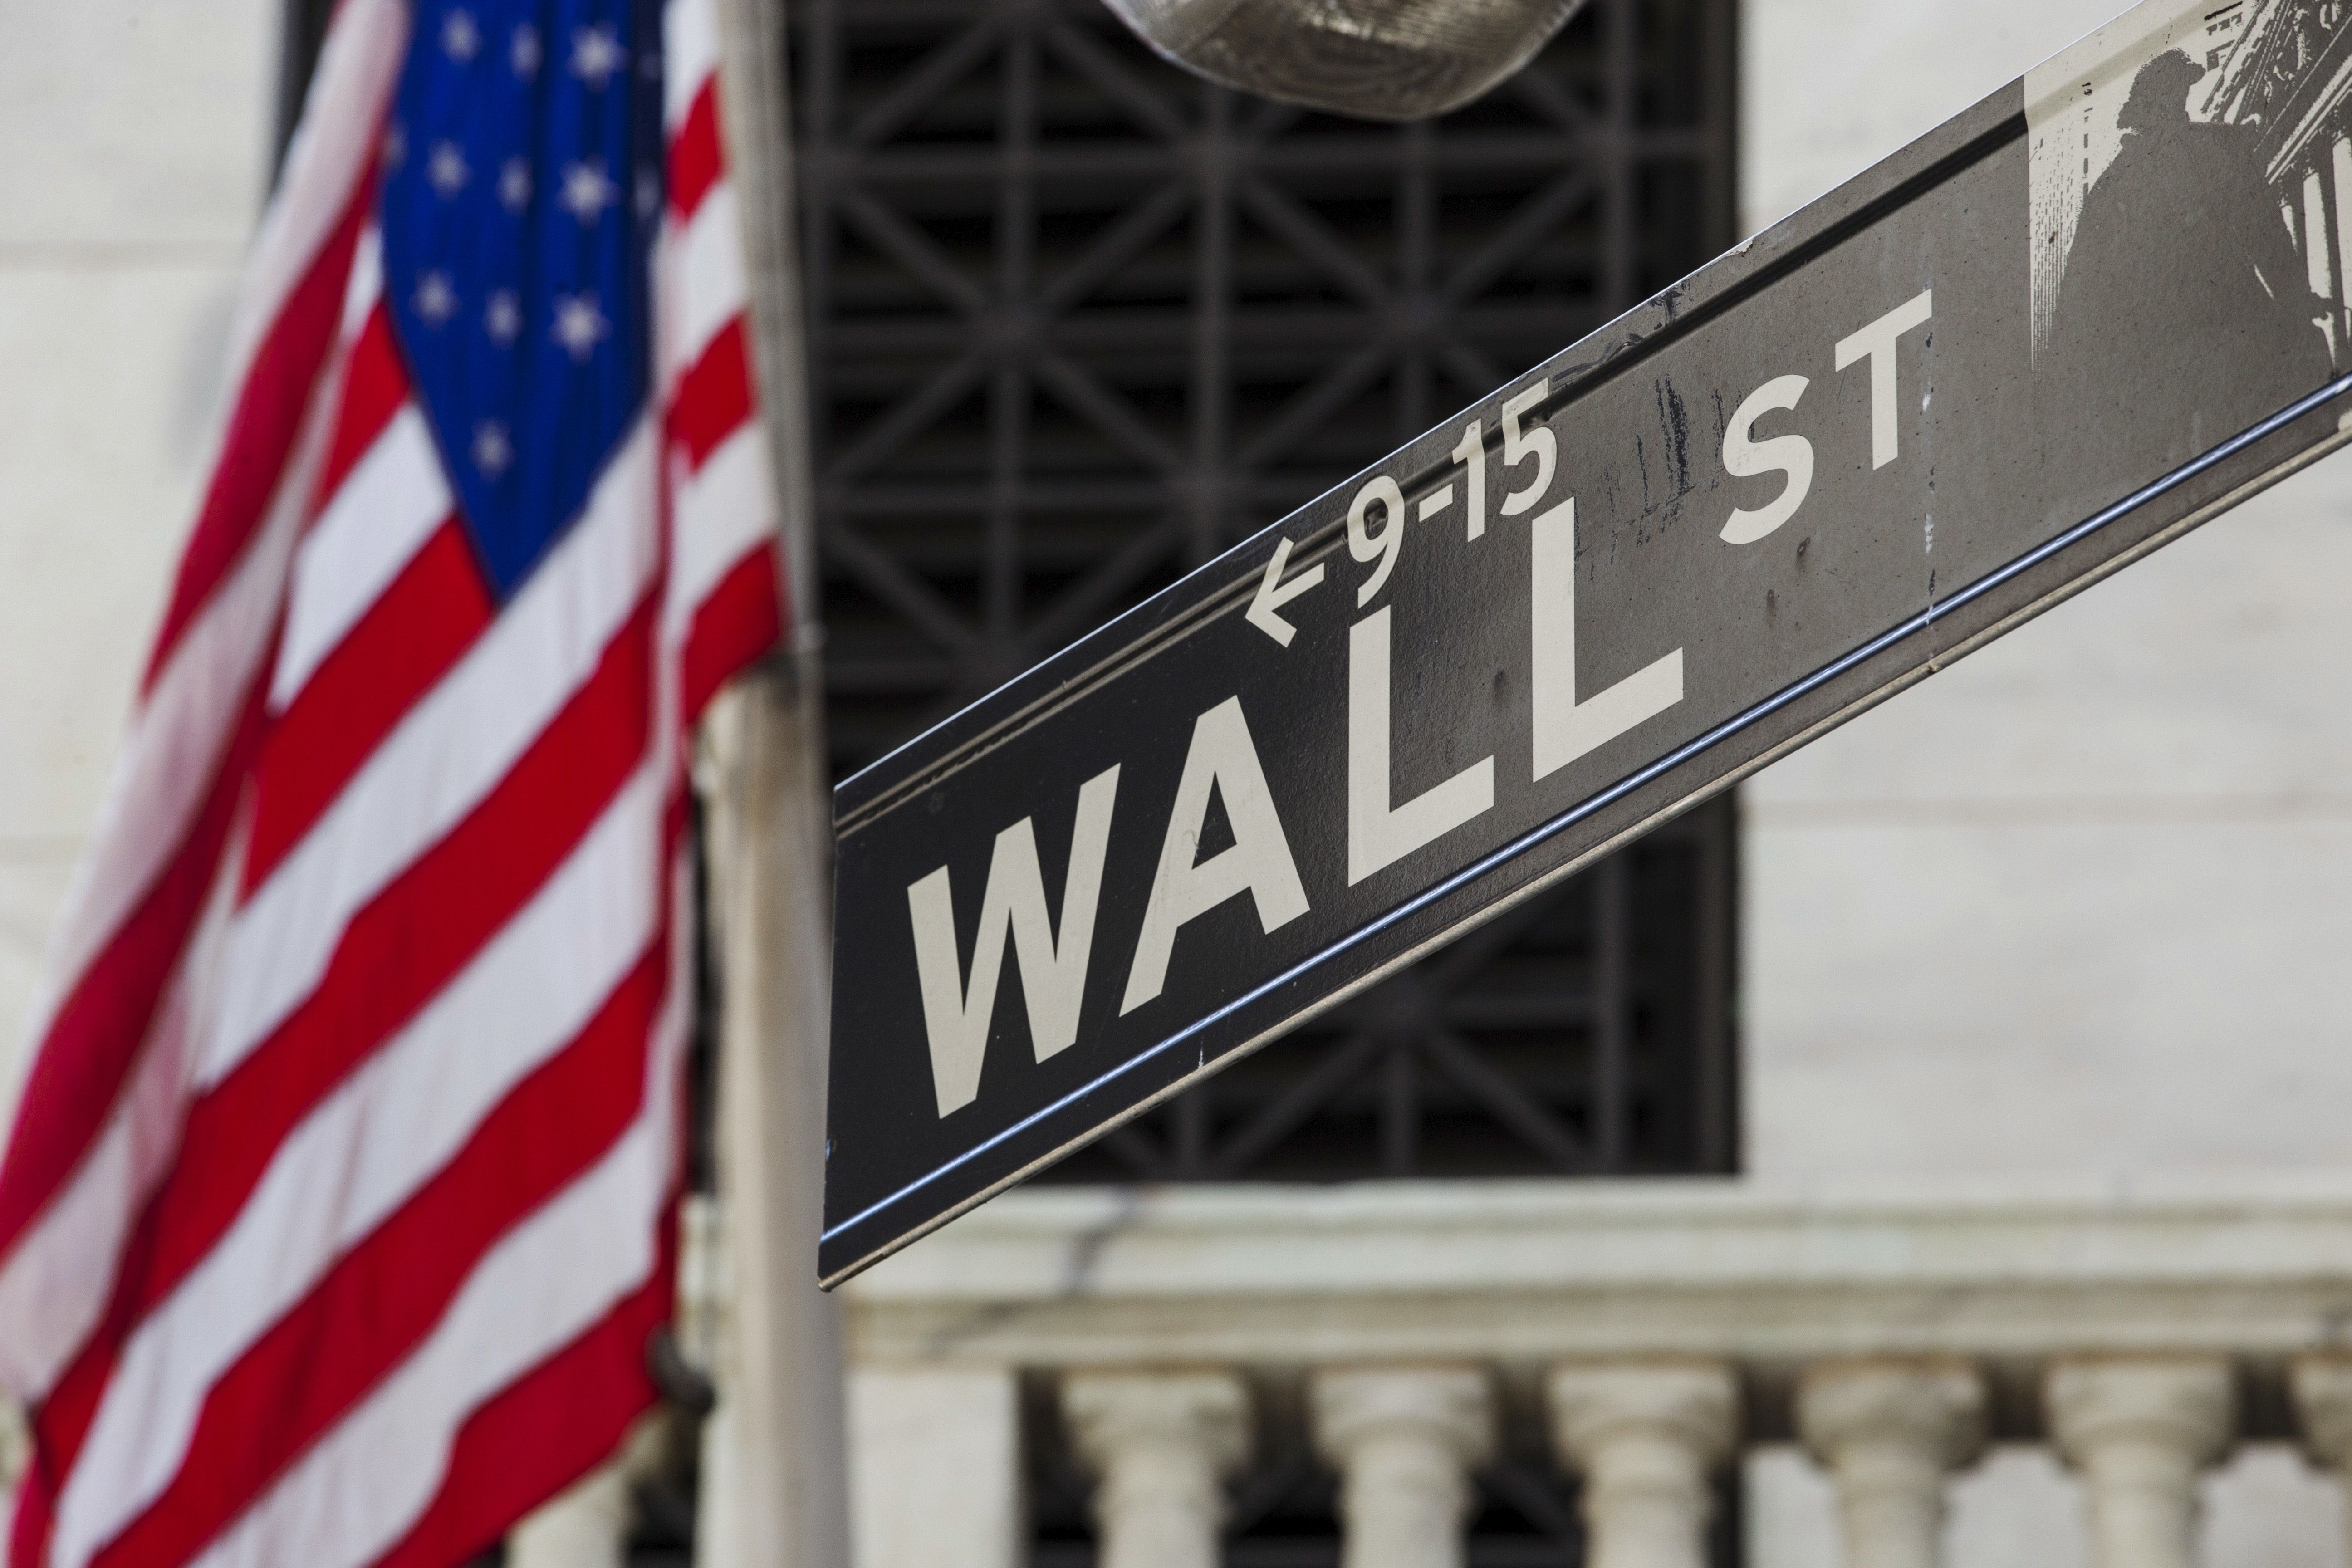 A U.S. flag hangs above the door of the New York Stock Exchange August 26, 2015. Wall Street racked up its biggest one-day gain in four years on Wednesday as fears about China's economy gave way to bargain hunters emboldened by expectations the U.S. Federal Reserve might not raise interest rates next month.   REUTERS/Lucas Jackson